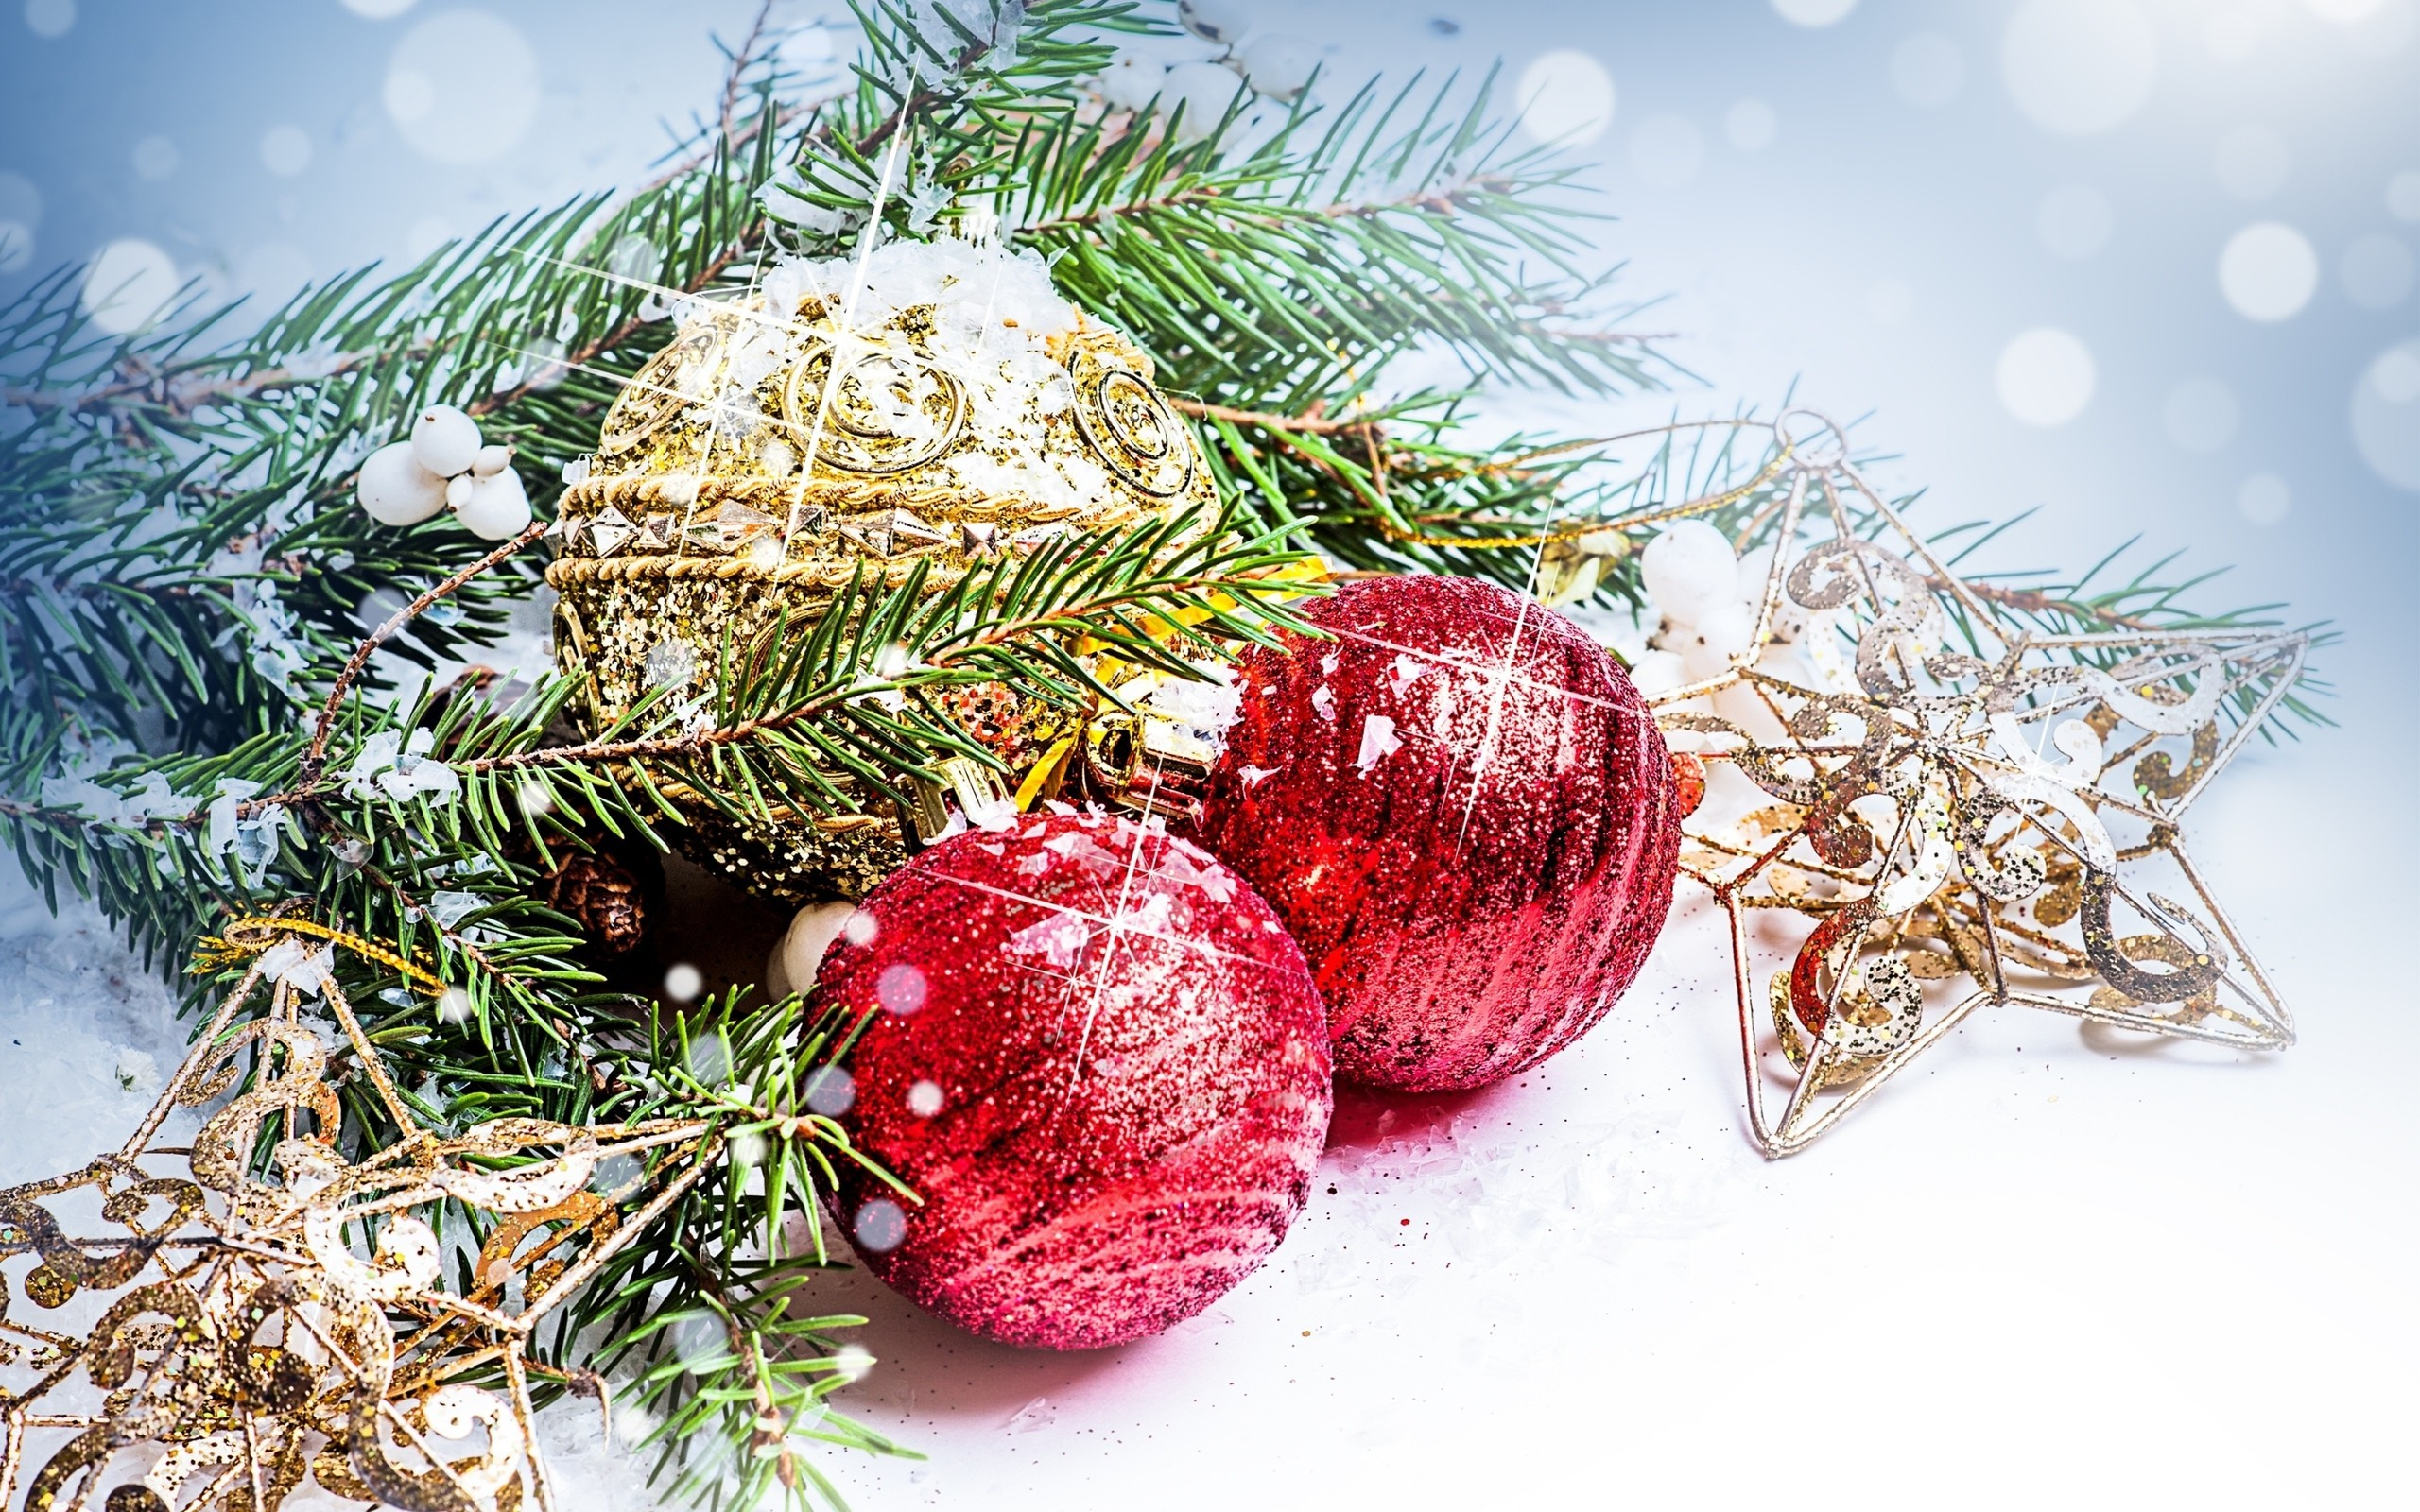 2560x1600 New Year, Snow, Christmas Ornaments, Leaves, Stars, Decorations